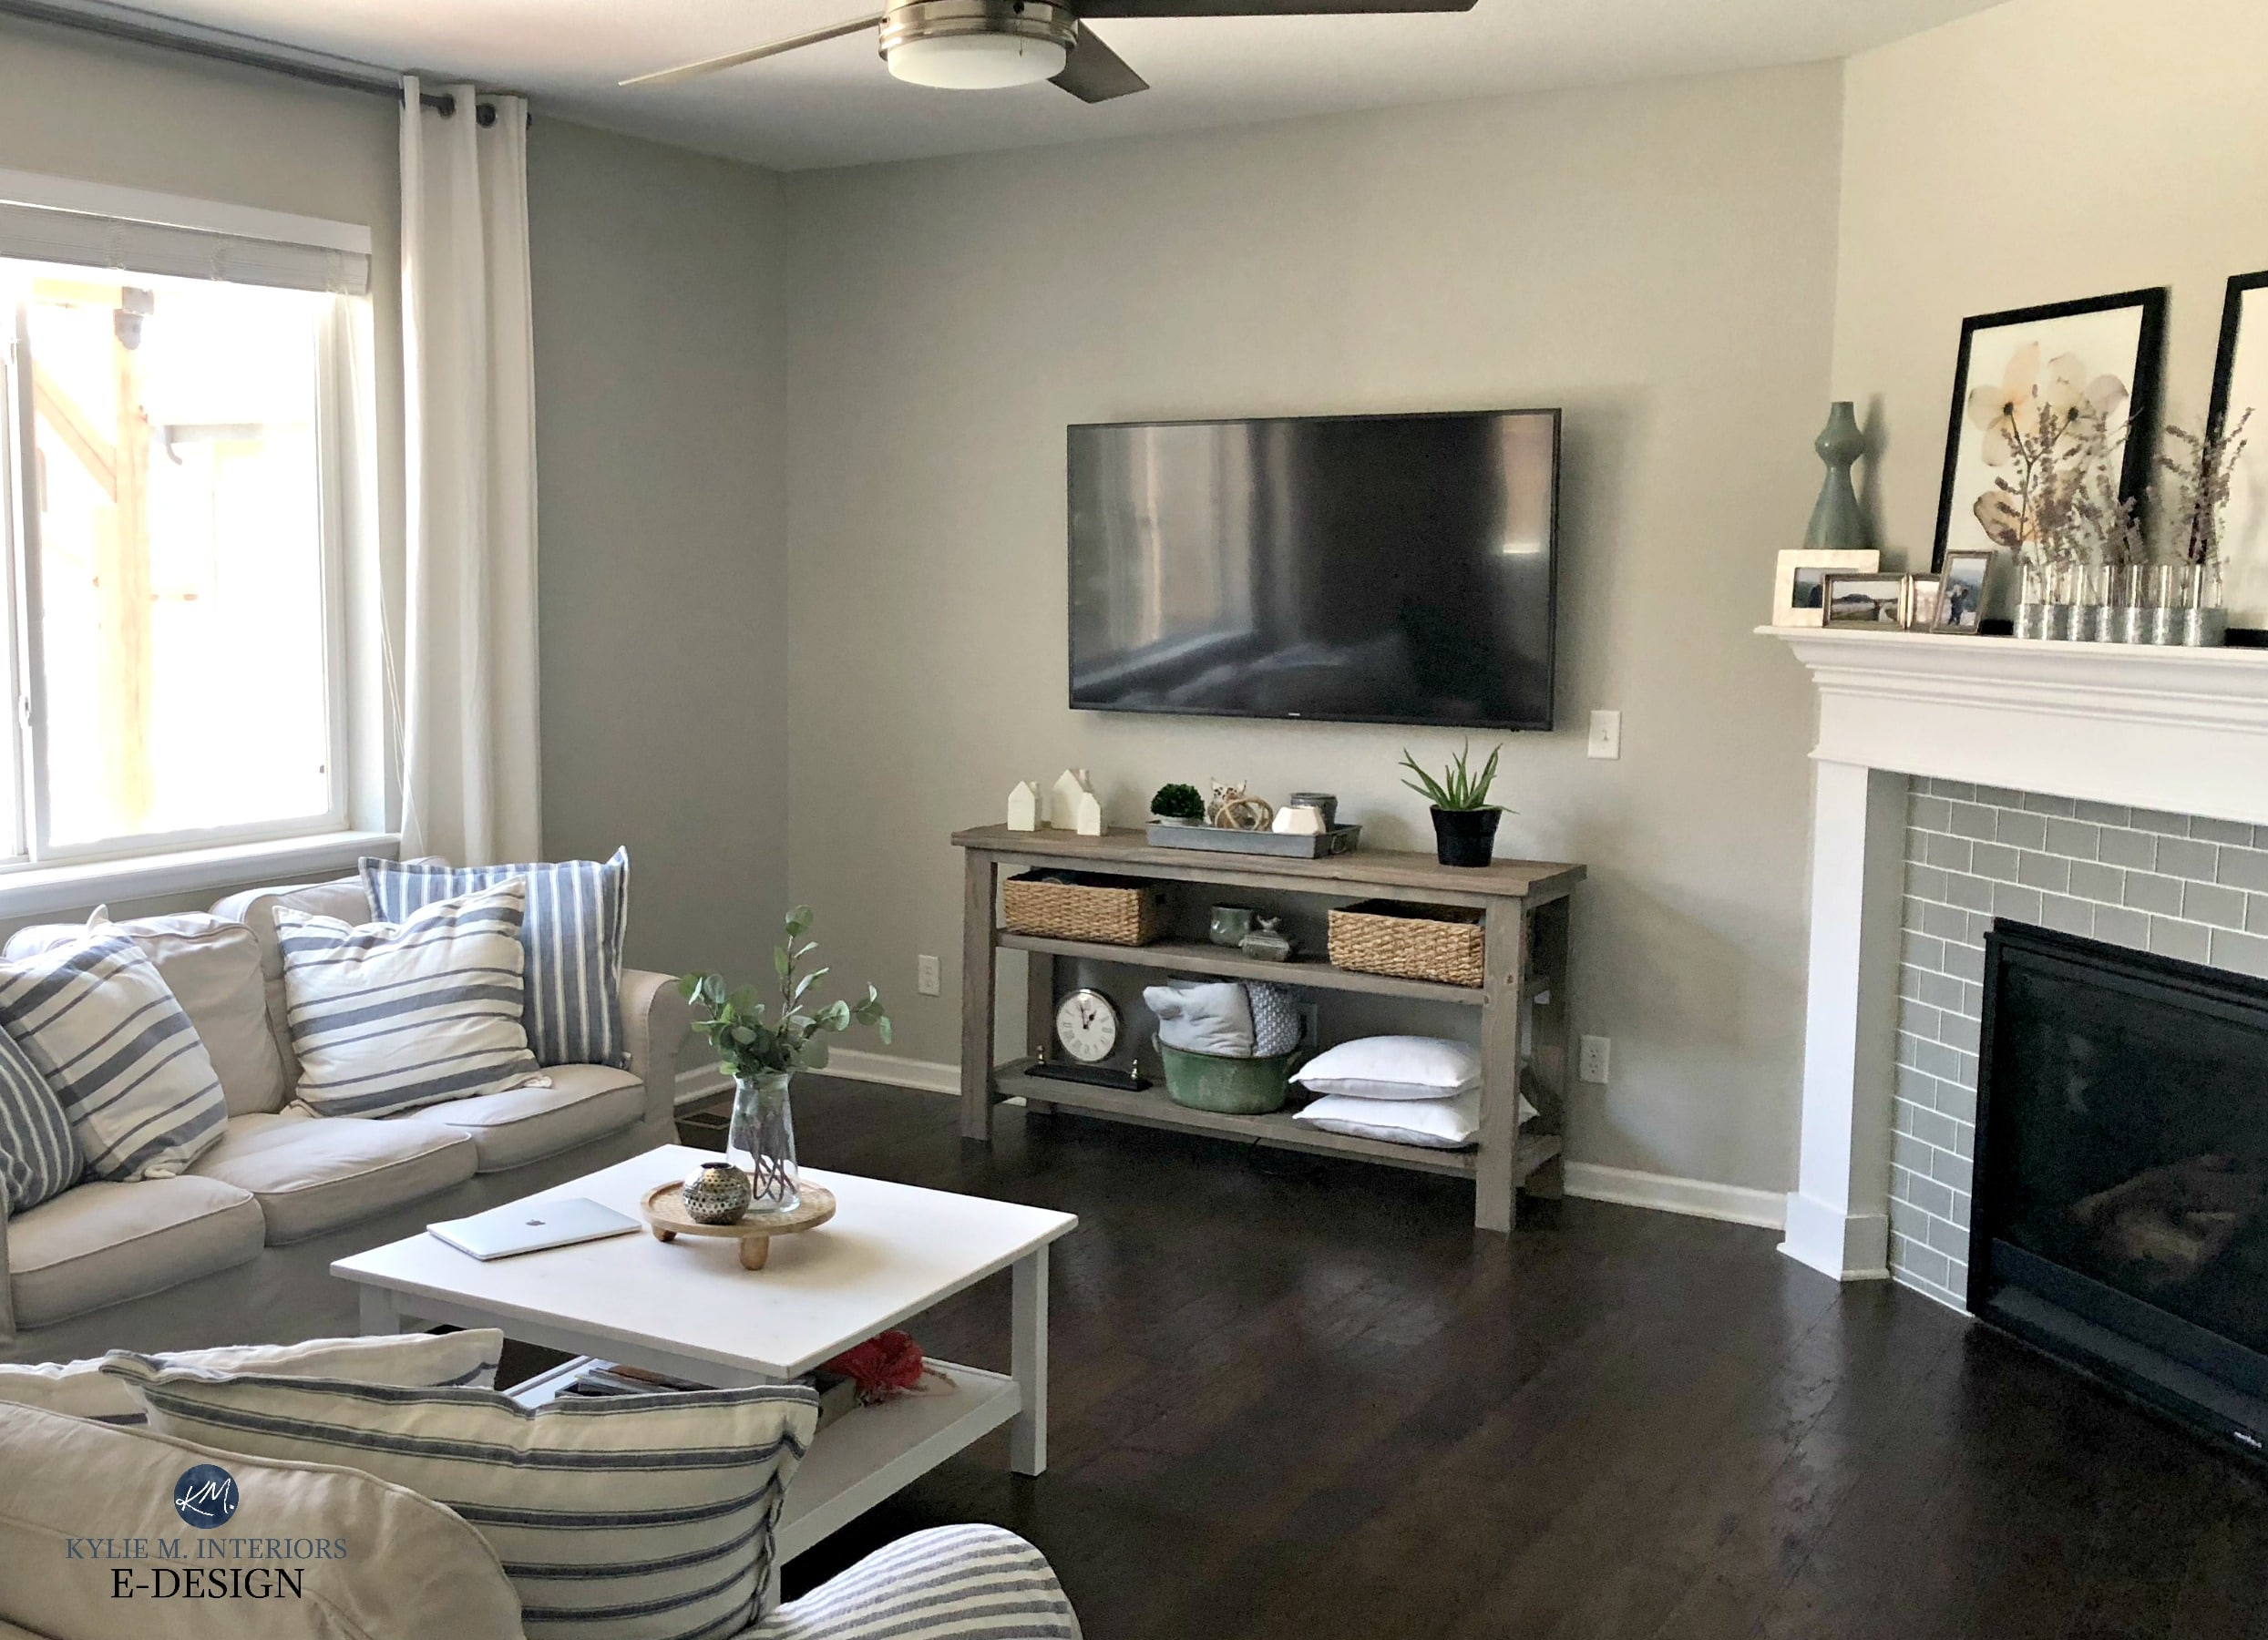 Sherwin williams repose gray in family or living room - Gray paint living room ...